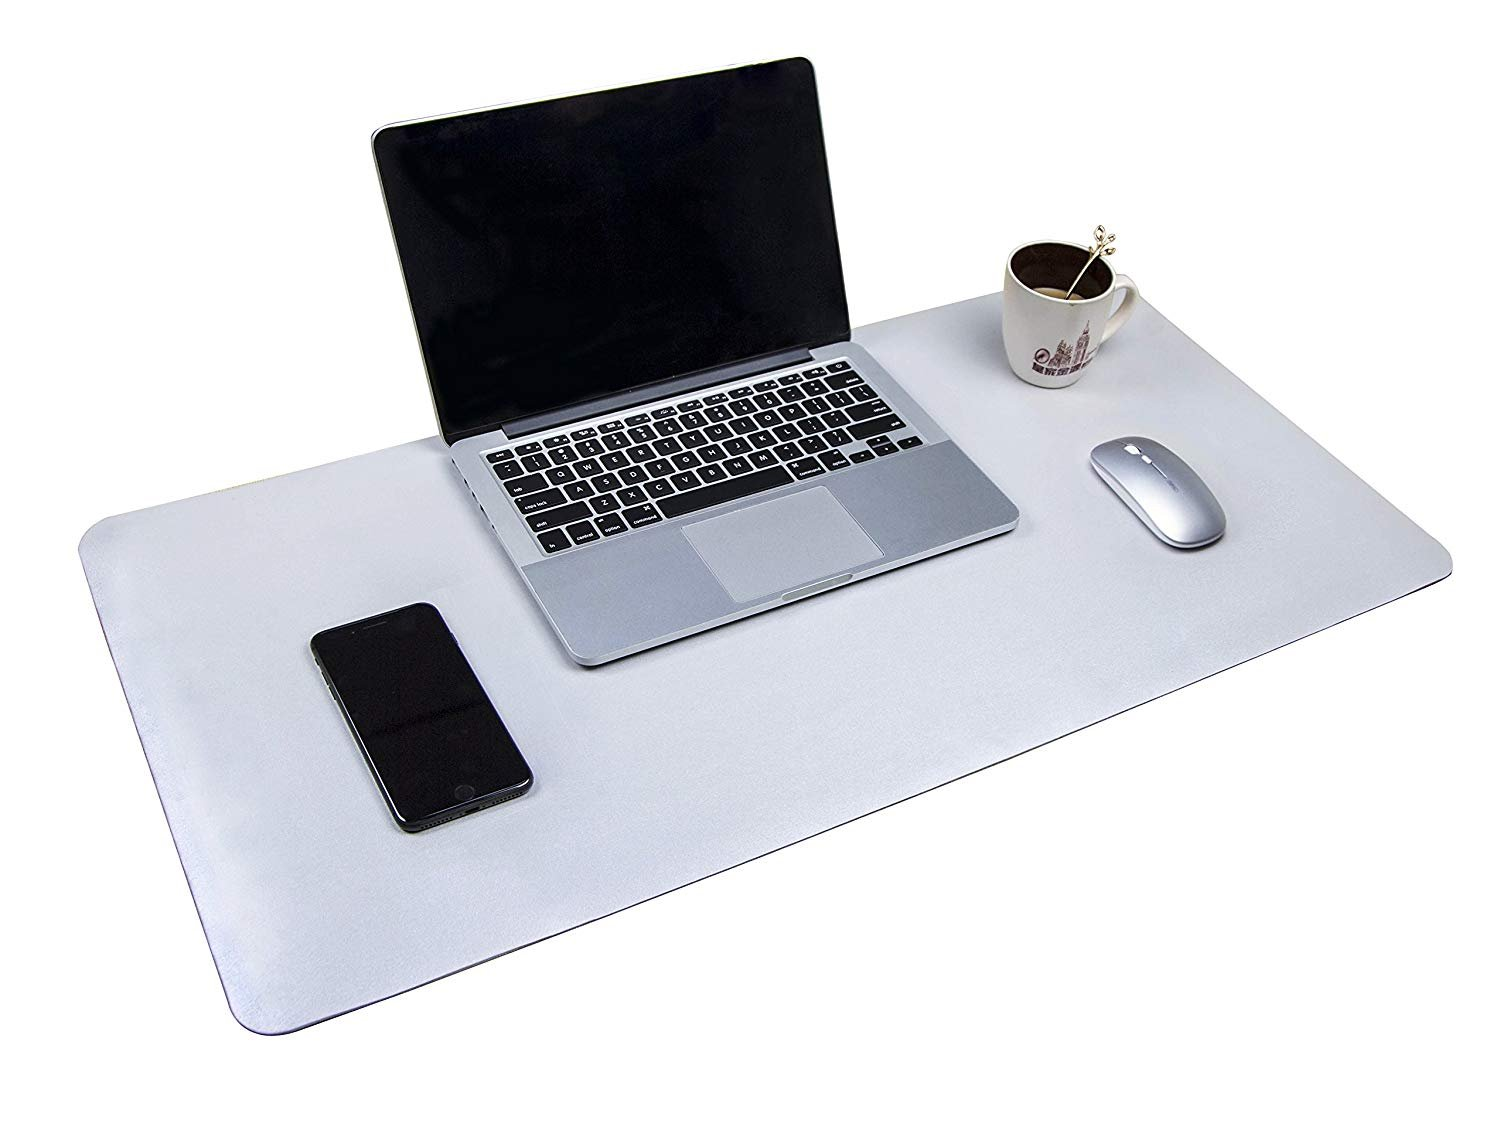 "Multifunctional Office Desk Pad, 35.4"" x 17"" YSAGi Ultra Thin Waterproof PU Leather Mouse Pad, Dual Use Desk Writing Mat for Office/Home (35.4"" x 17"", Silver)"